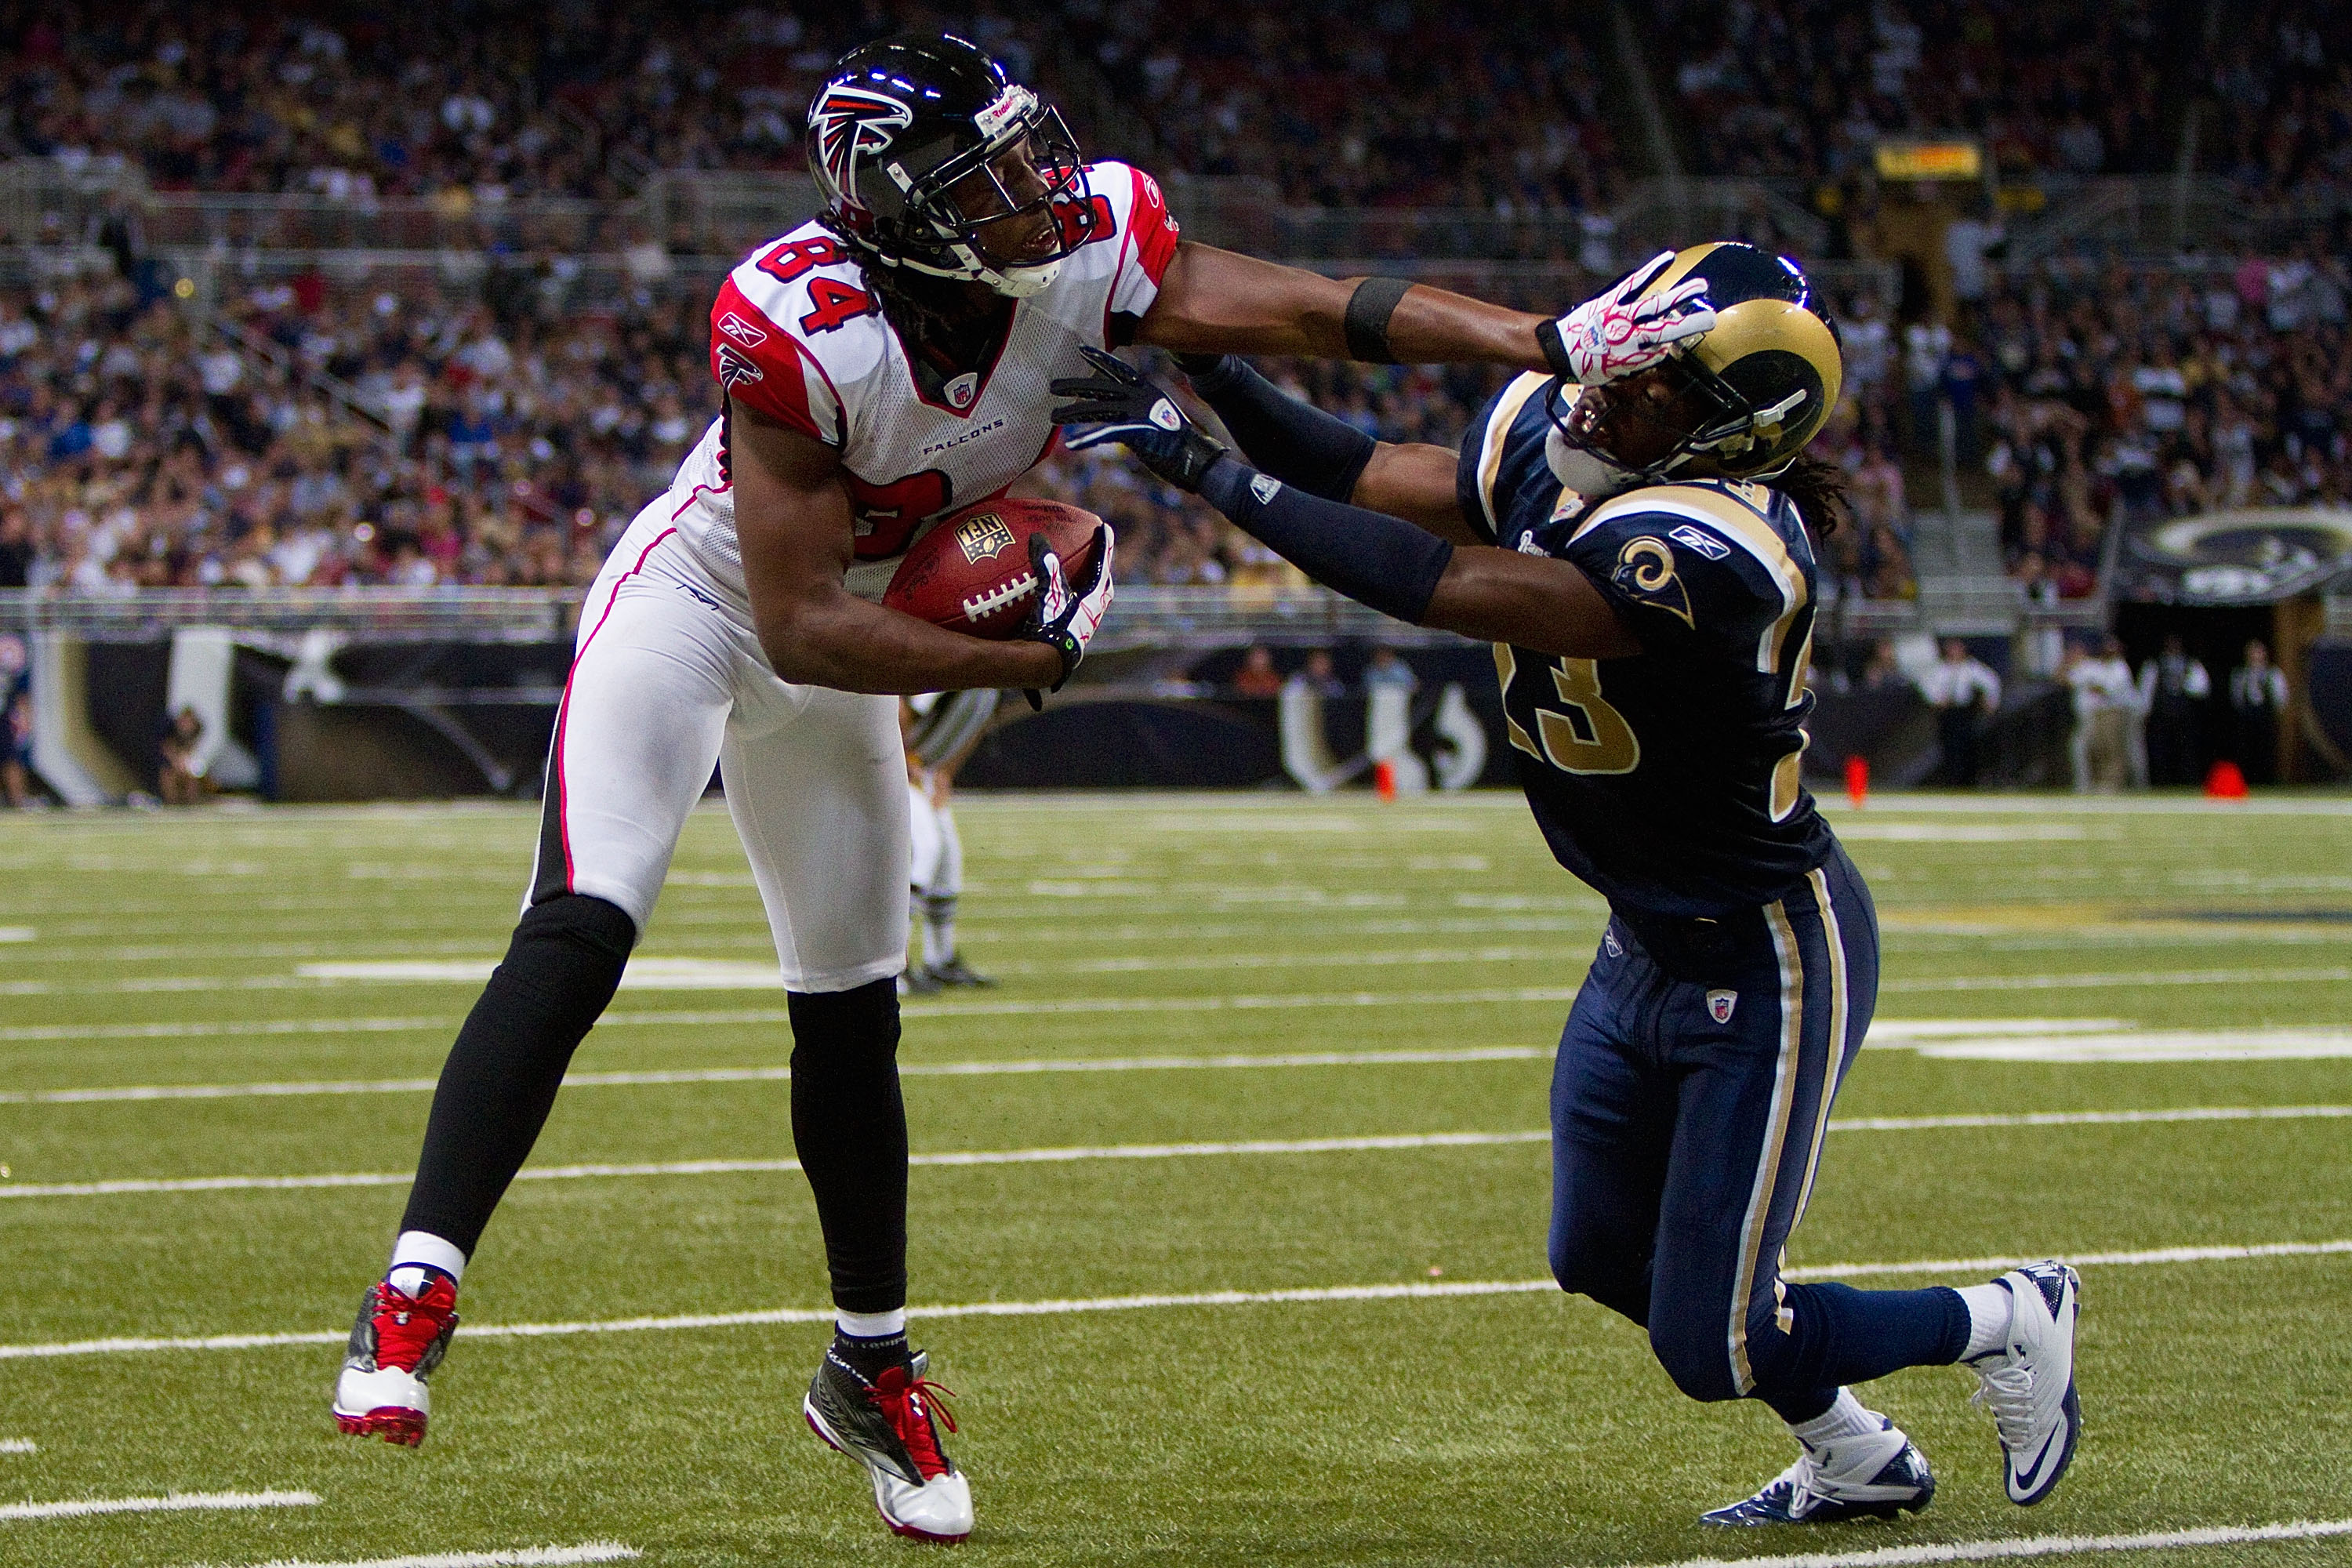 ST. LOUIS - NOVEMBER 21: Roddy White #84 of the Atlanta Falcons stiff arms Jerome Murphy #23 of the St. Louis Rams at the Edward Jones Dome on November 21, 2010 in St. Louis, Missouri.  The Falcons beat the Rams 34-17.  (Photo by Dilip Vishwanat/Getty Ima